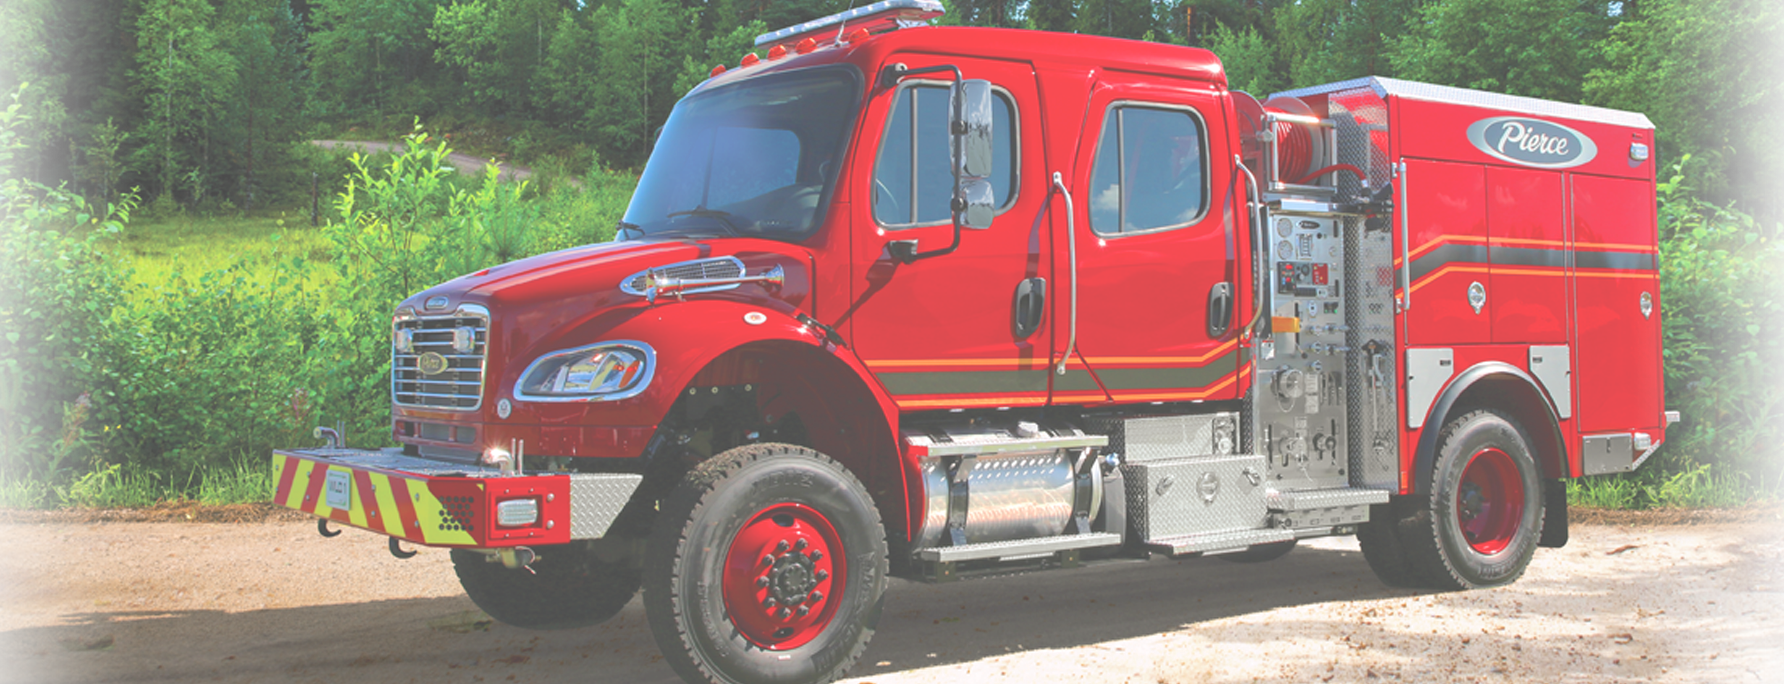 Wildland Emergency Apparatus